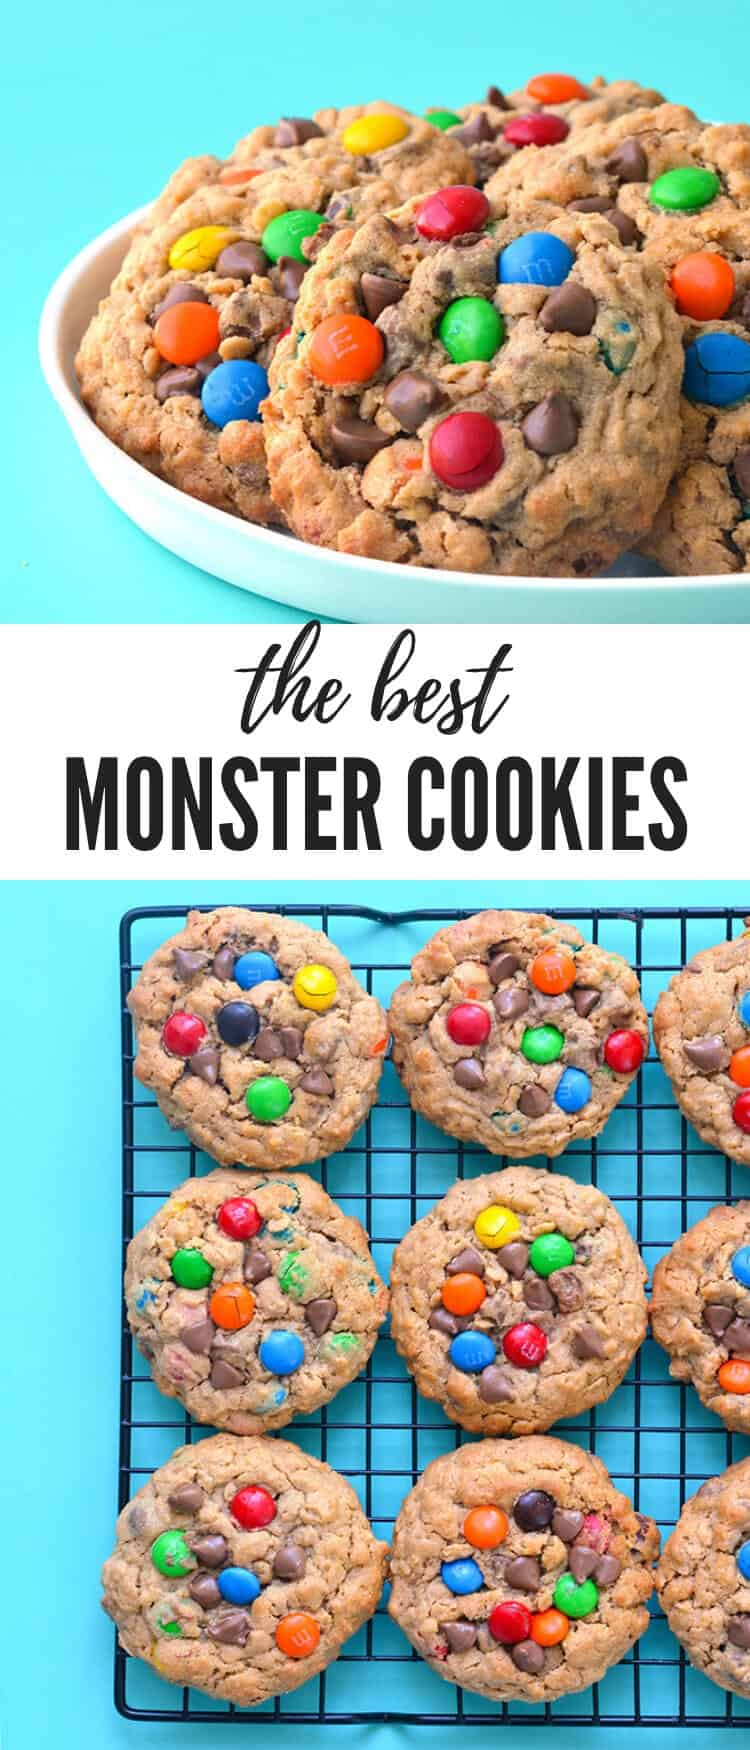 Love Monster Cookies? You'll love these chunky peanut butter Monster Cookies stuffed with chocolate chips, rolled oats and M&M candy. Recipe from sweetestmenu.coom #mms #chocolate #peanutbutter #cookies